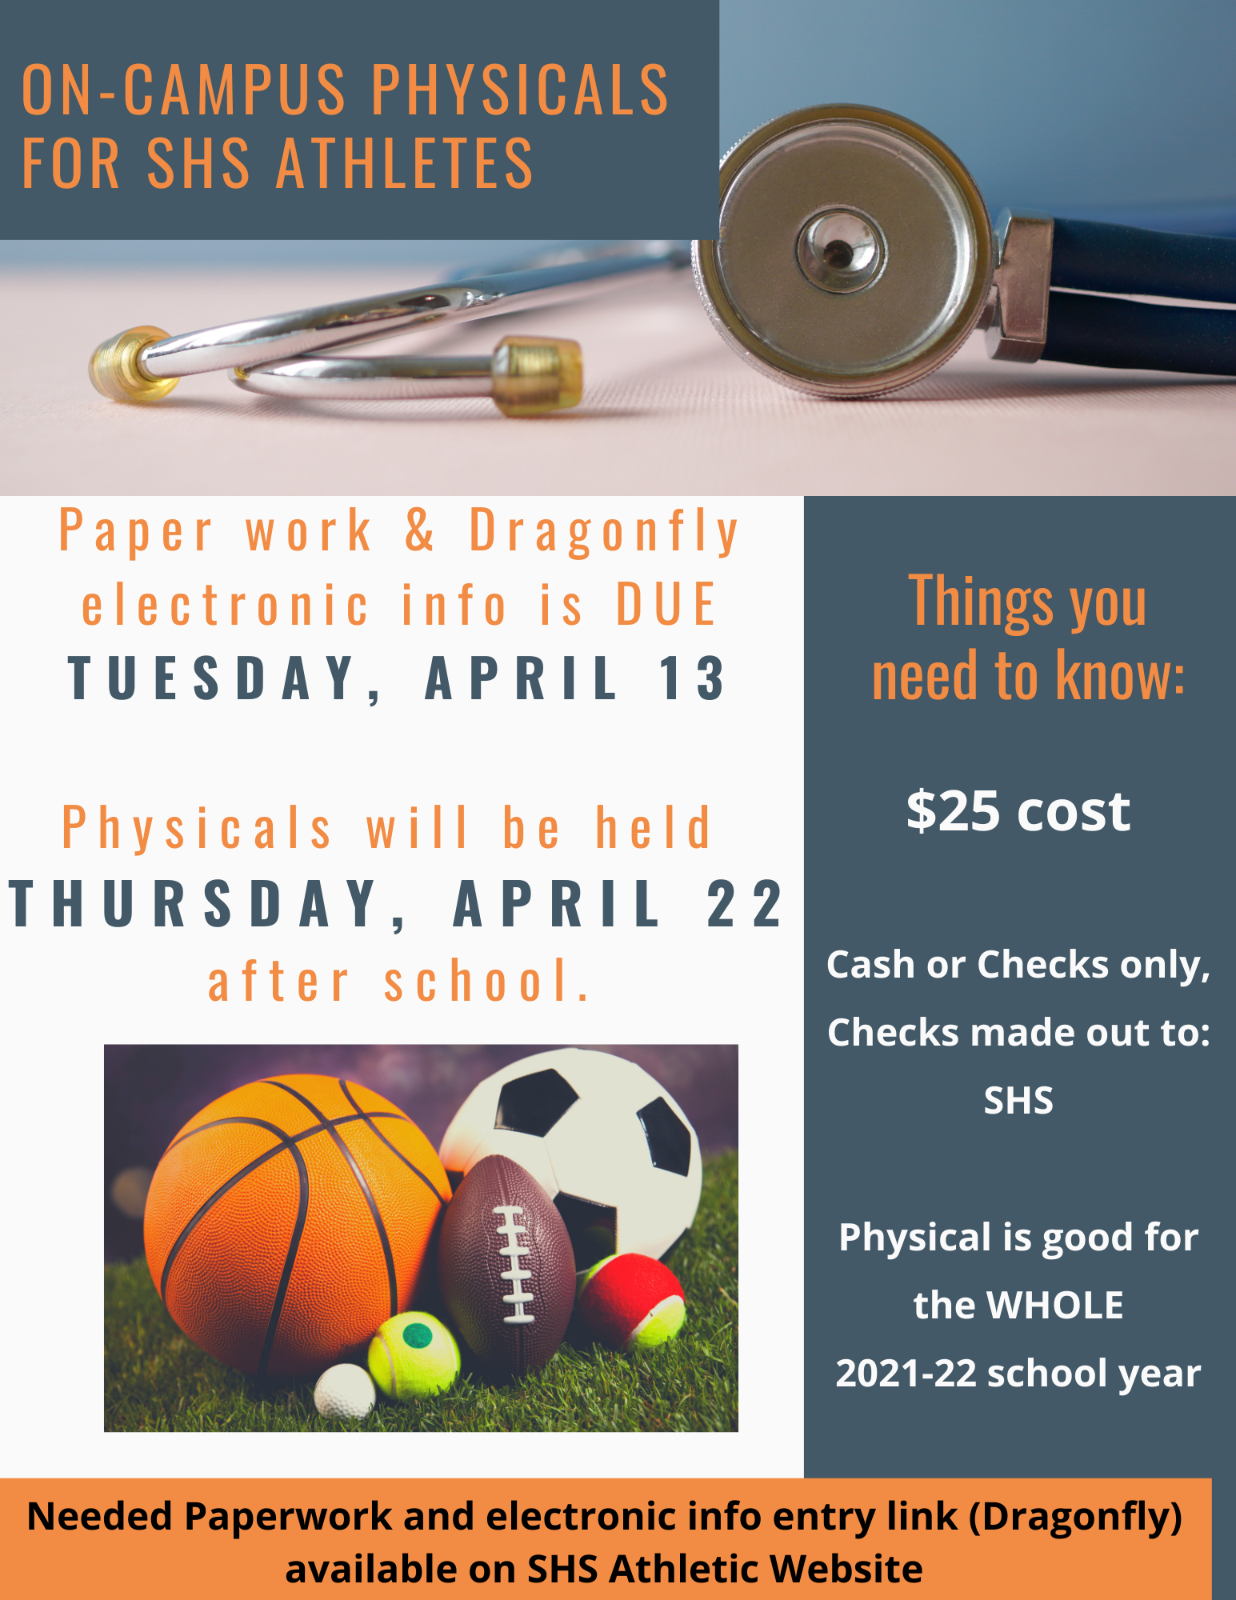 On Campus Physicals offered April 22